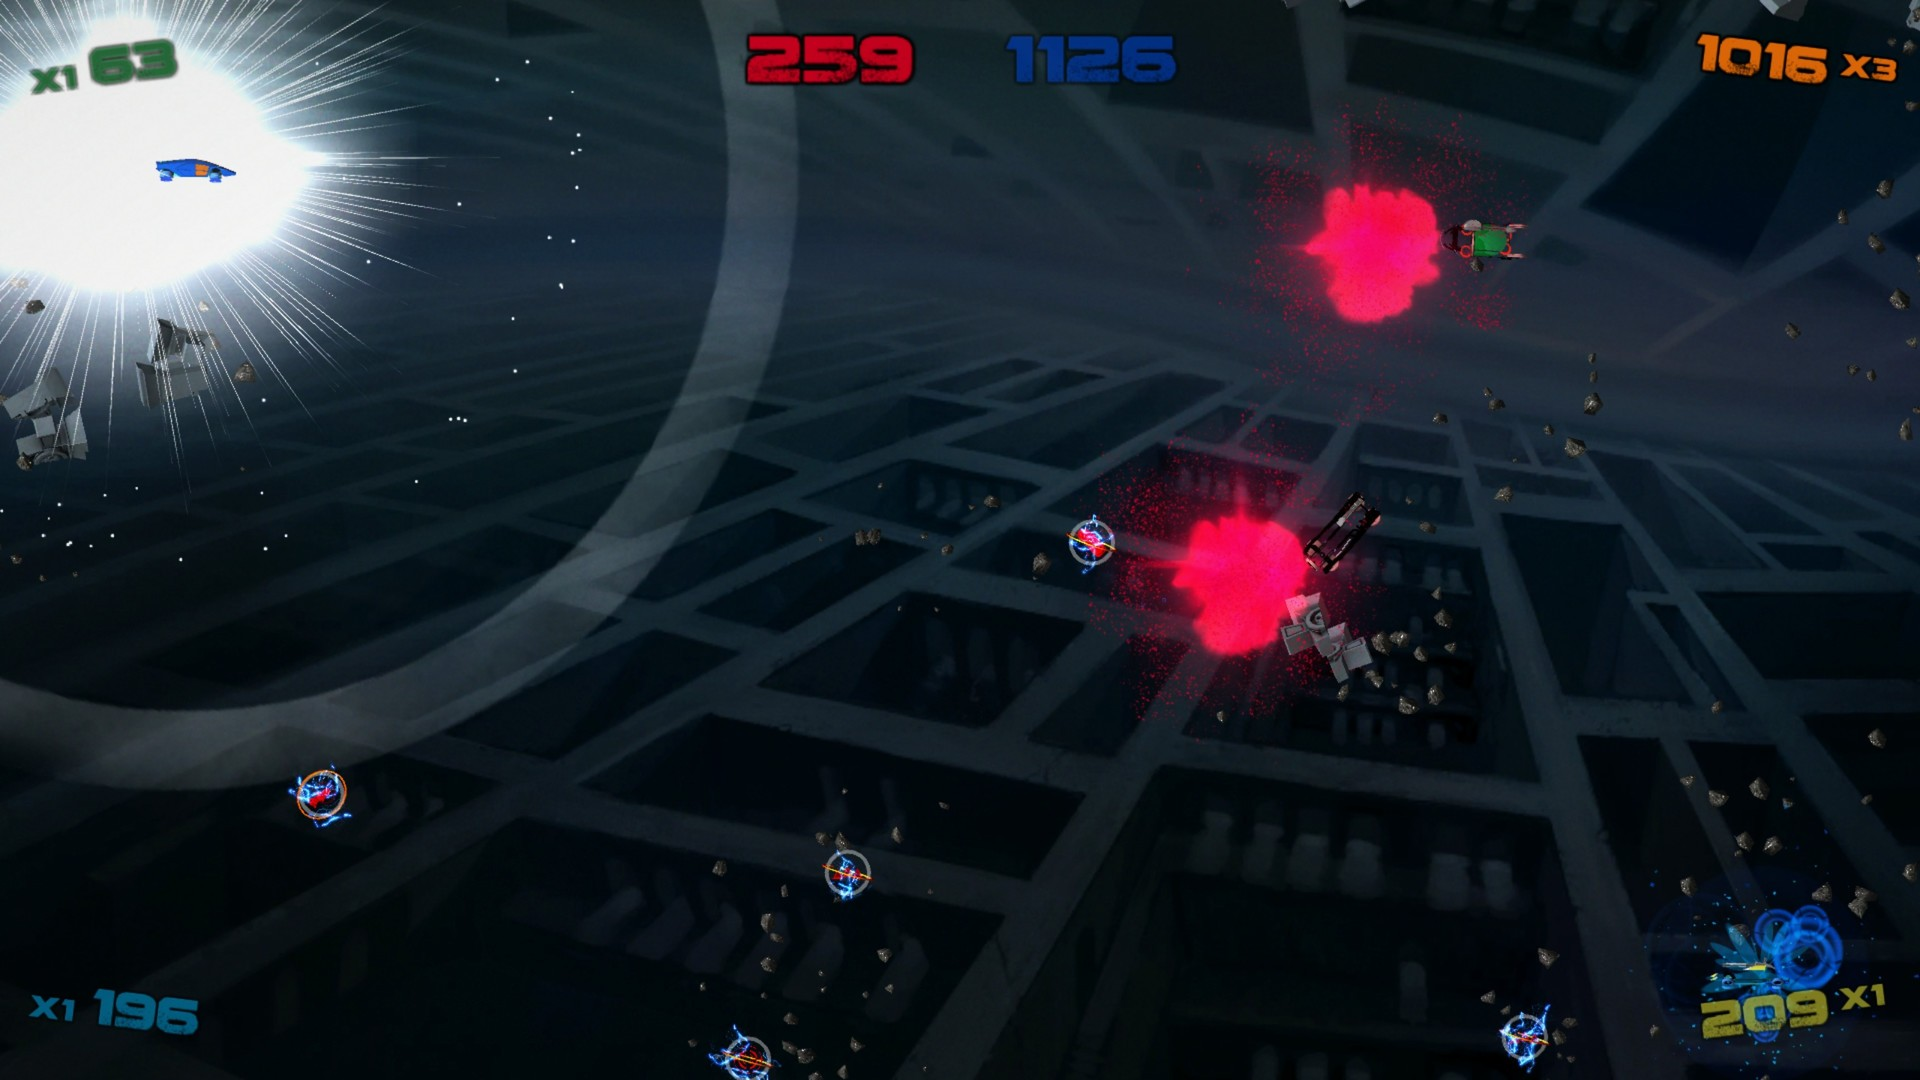 34BigThings, Action, arcade, casual, Digital Tribe, Hyperdrive Massacre, Hyperdrive Massacre Review, indie, local multiplayer, Shoot 'Em Up, Shooter, top down, Xbox One, Xbox One Review